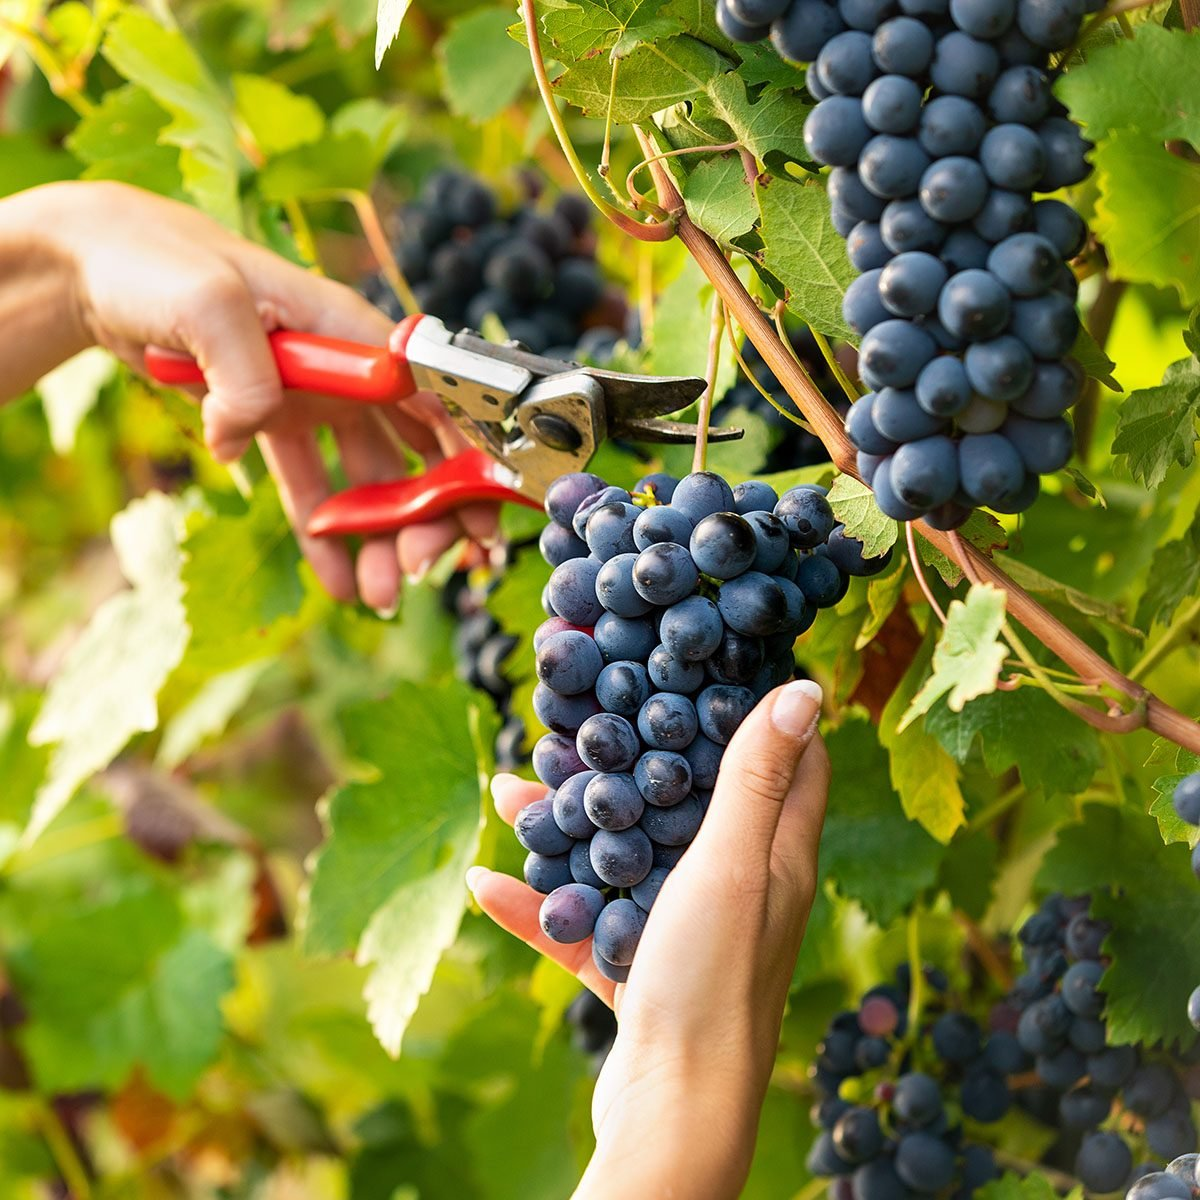 Young pretty woman picking bunches of ripe black grapes on the vines in a winery vineyard in a close up view of her hands and secateurs